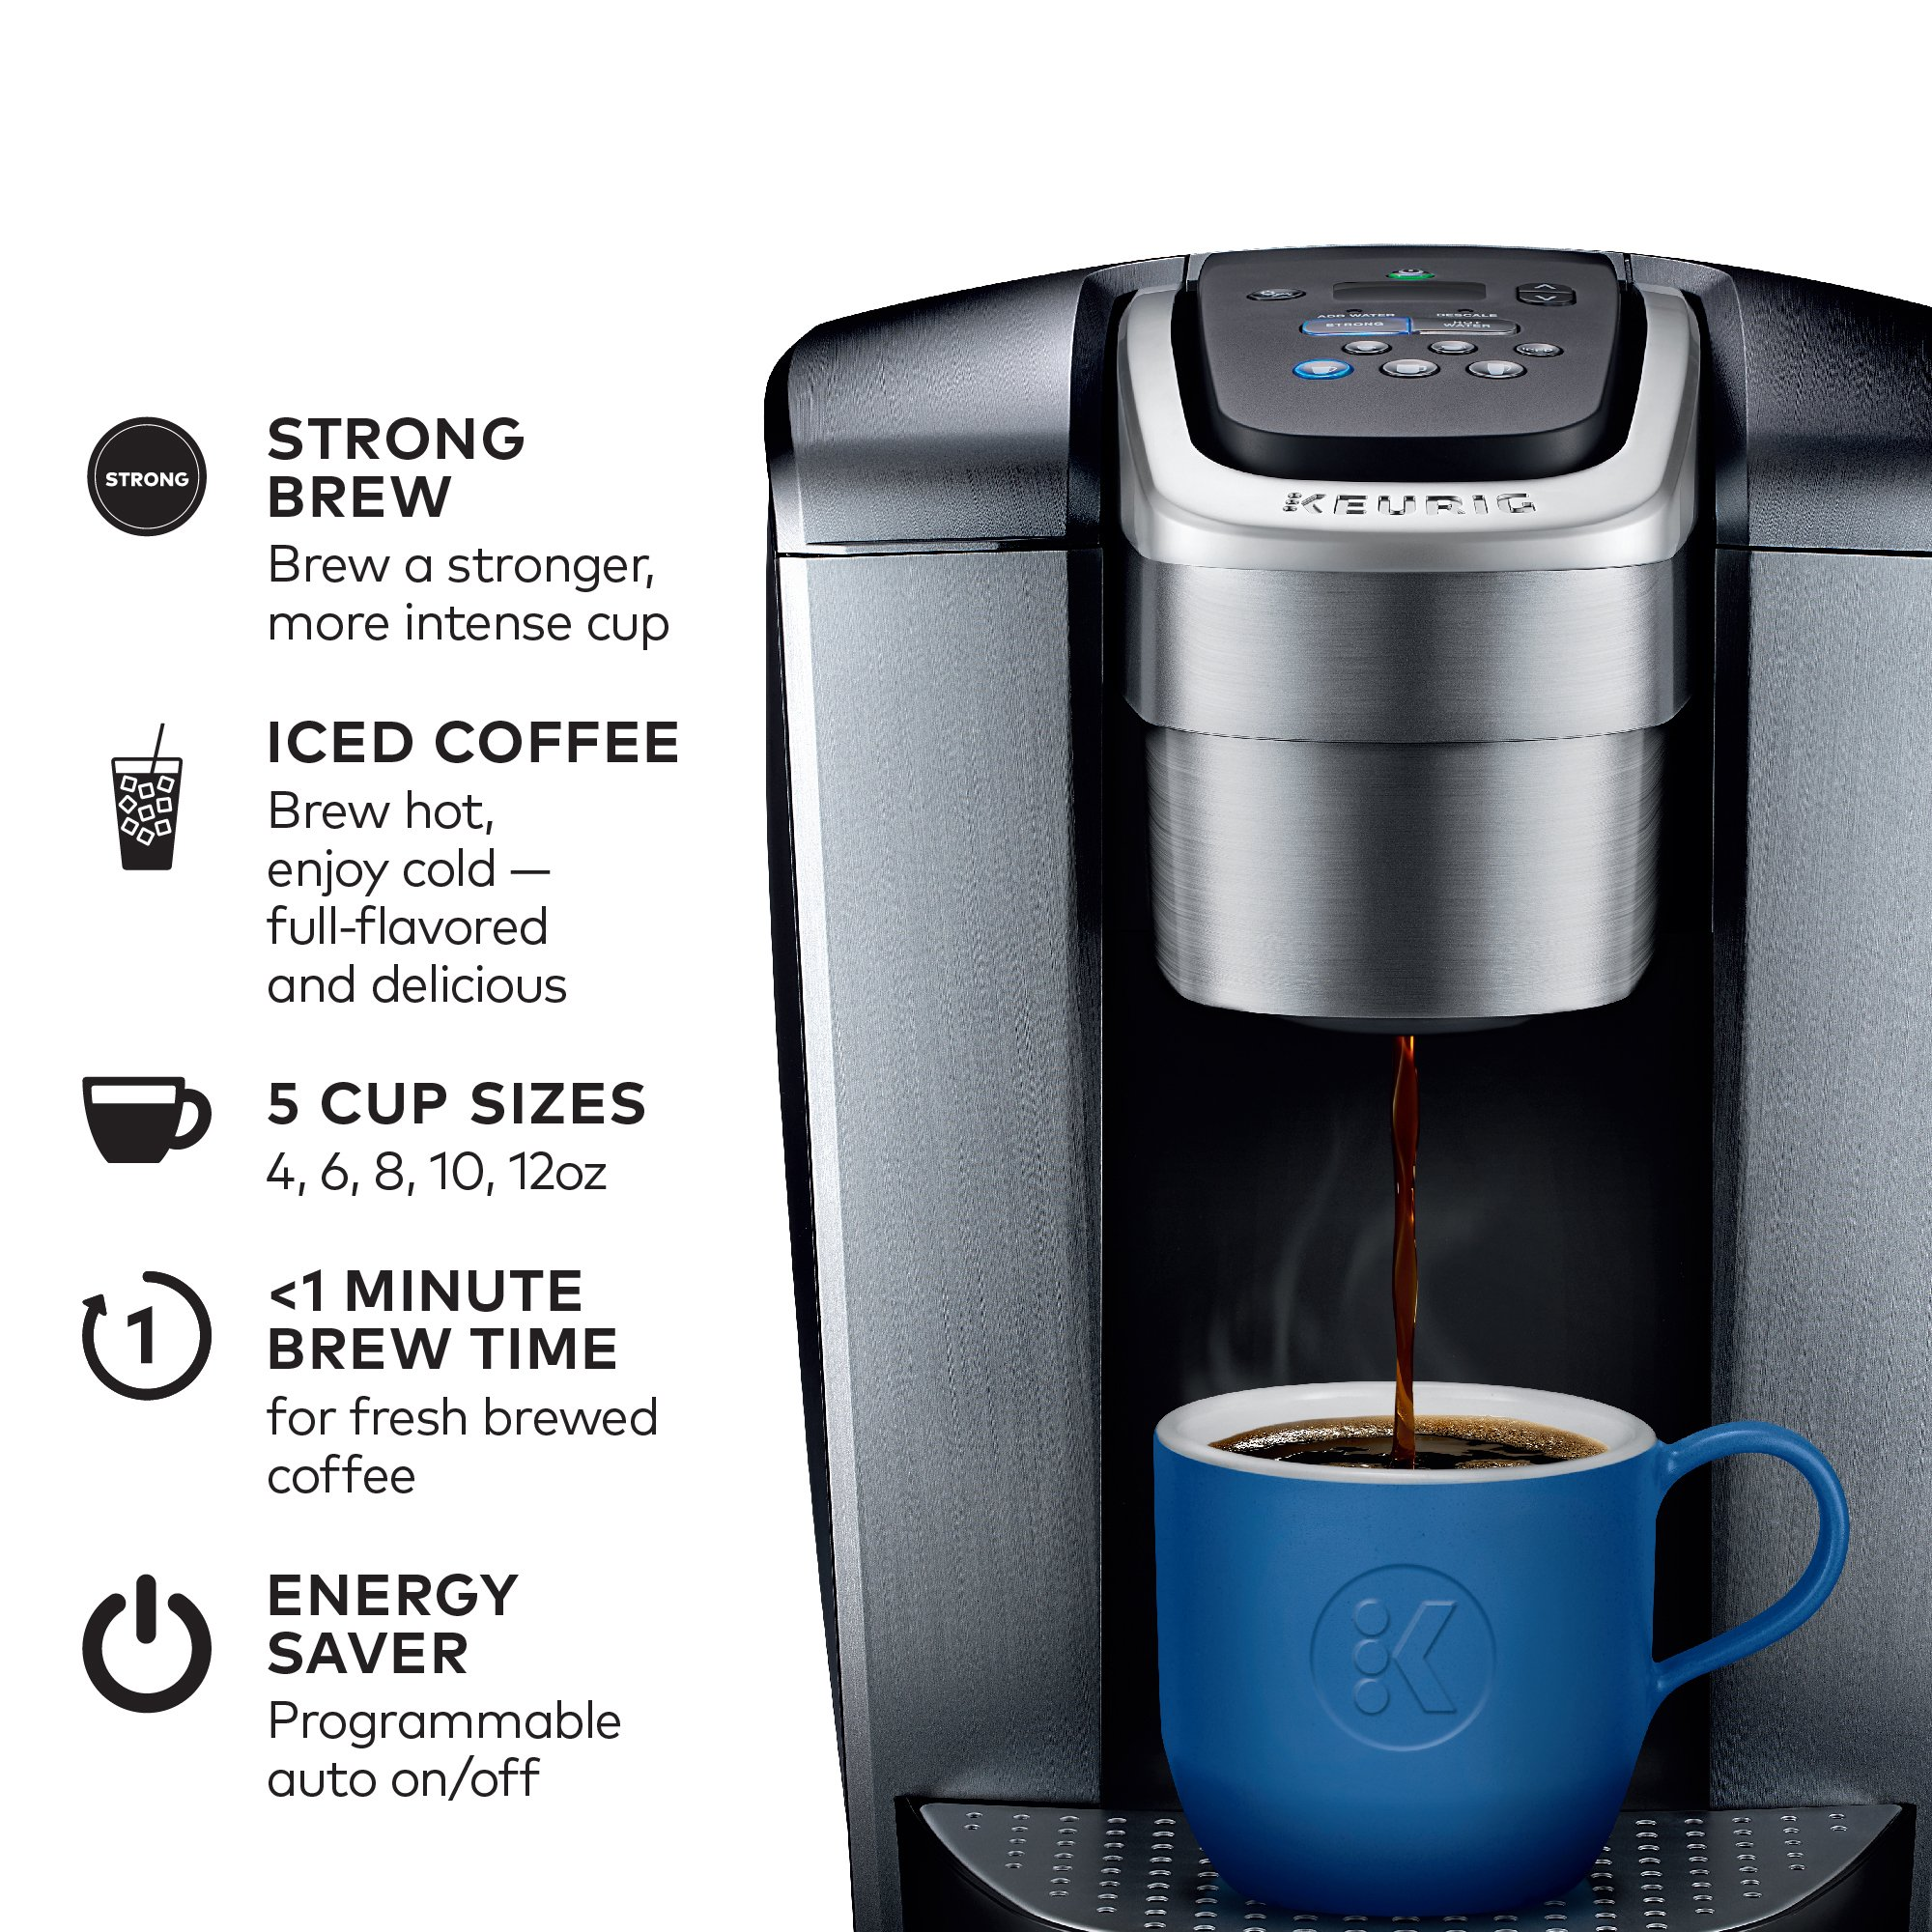 Keurig K-Elite K Single Serve K-Cup Pod Maker, with Strong Temperature Control, Iced Coffee Capability, 12oz Brew Size, Programmable, Brushed Silver by Keurig (Image #2)